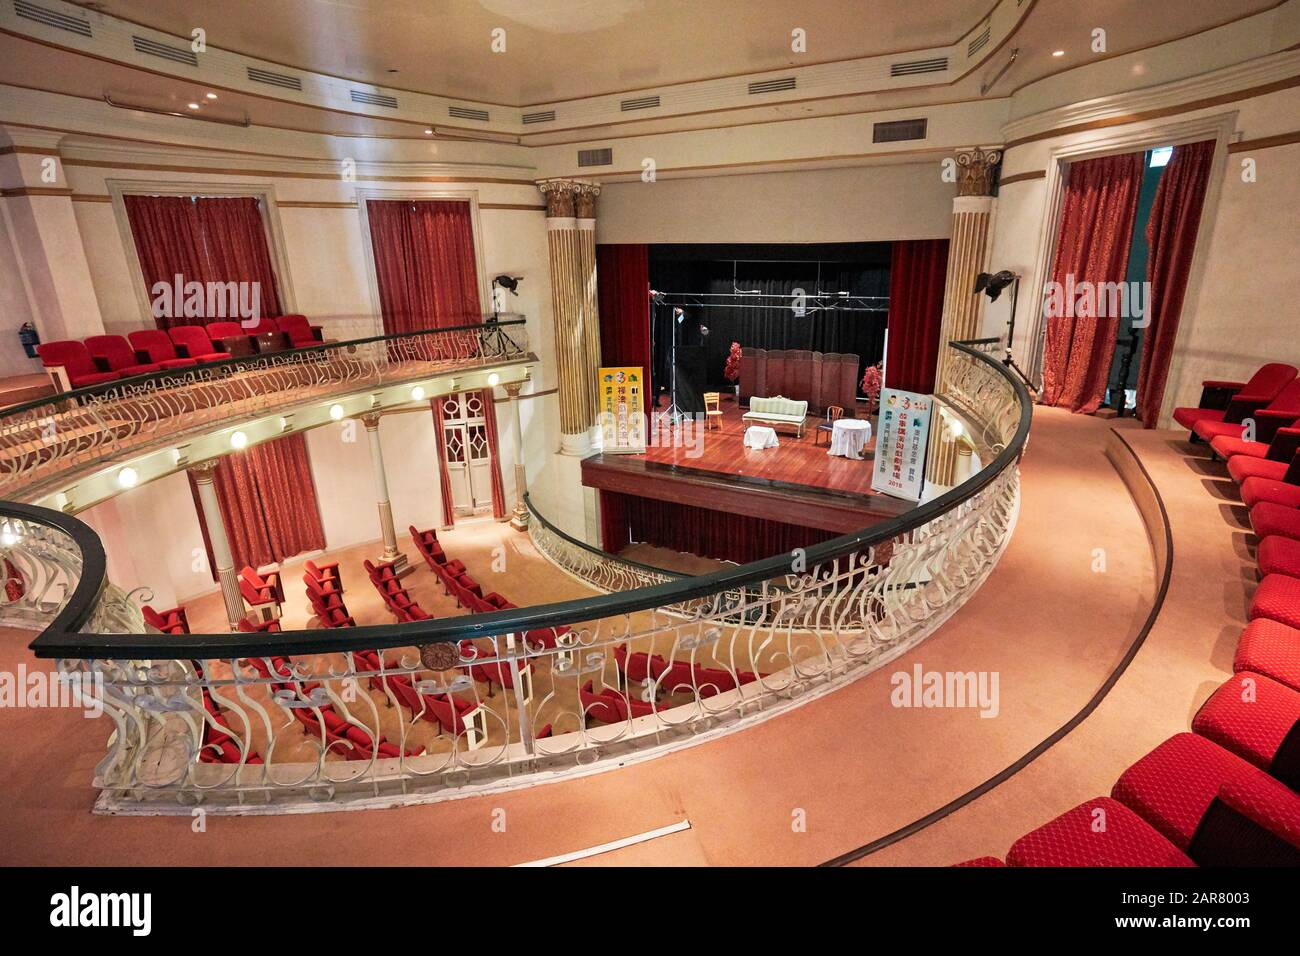 Interior view of the auditorium and stage from the balcony in the Dom Pedro V Theatre. Macau, China. Stock Photo